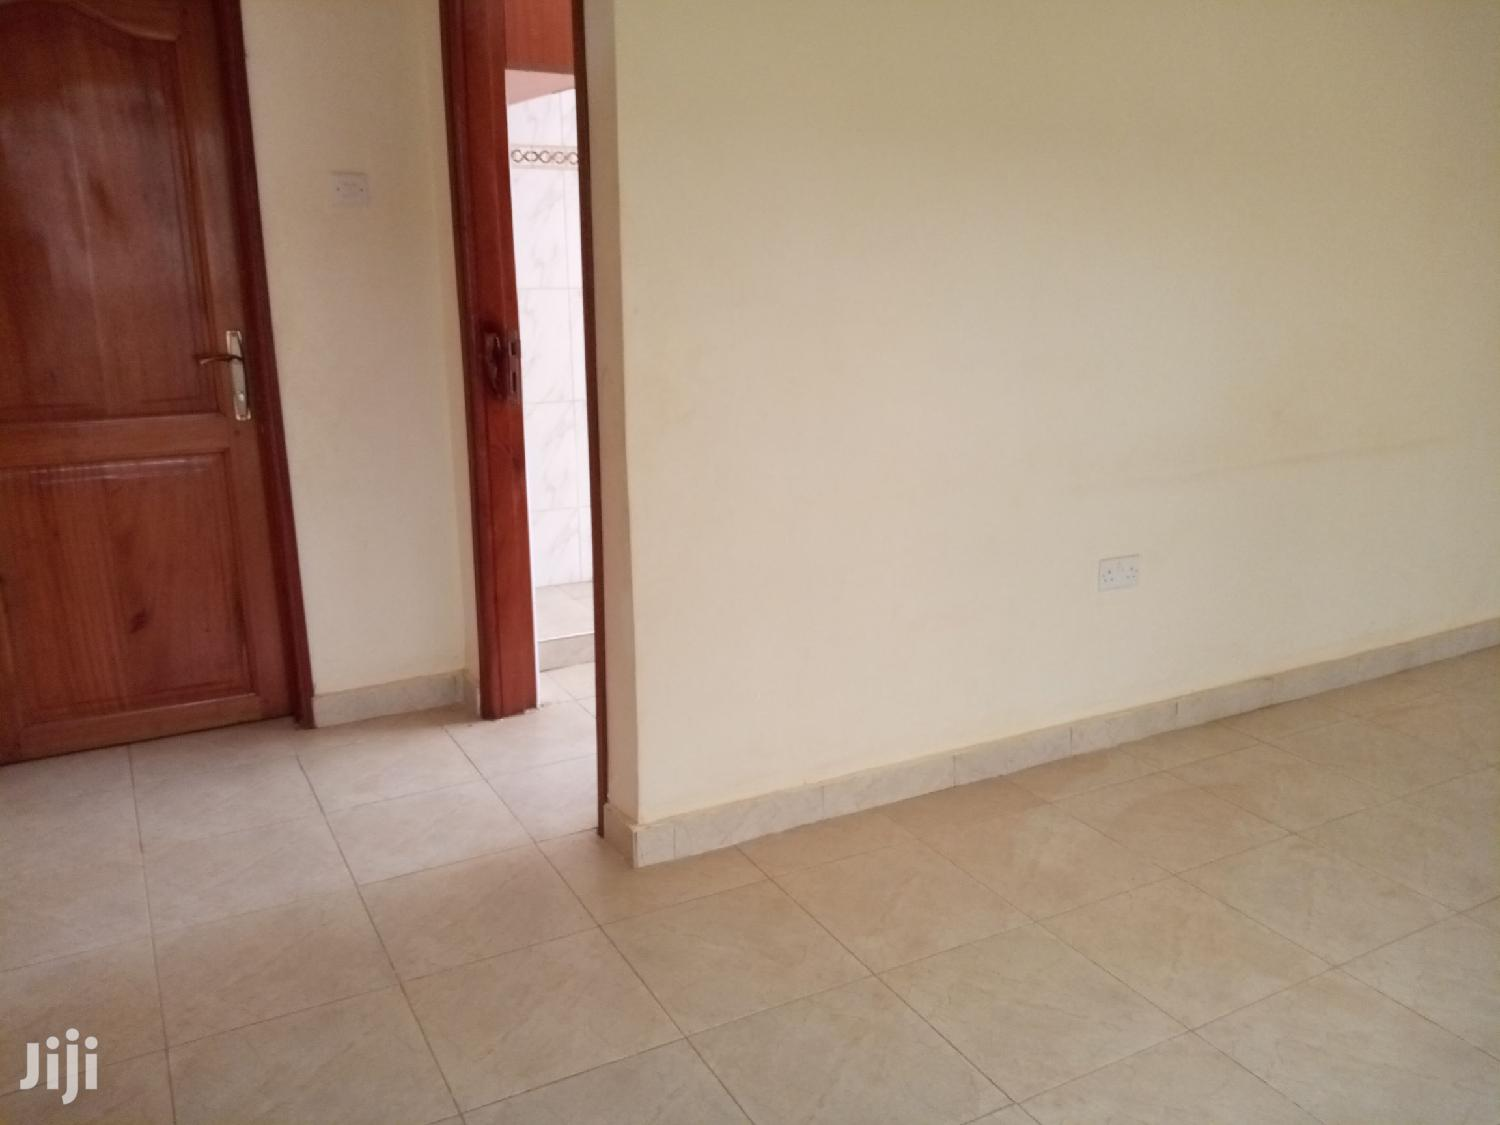 Kiwatule One Bedroom House For Rent | Houses & Apartments For Rent for sale in Kampala, Central Region, Uganda